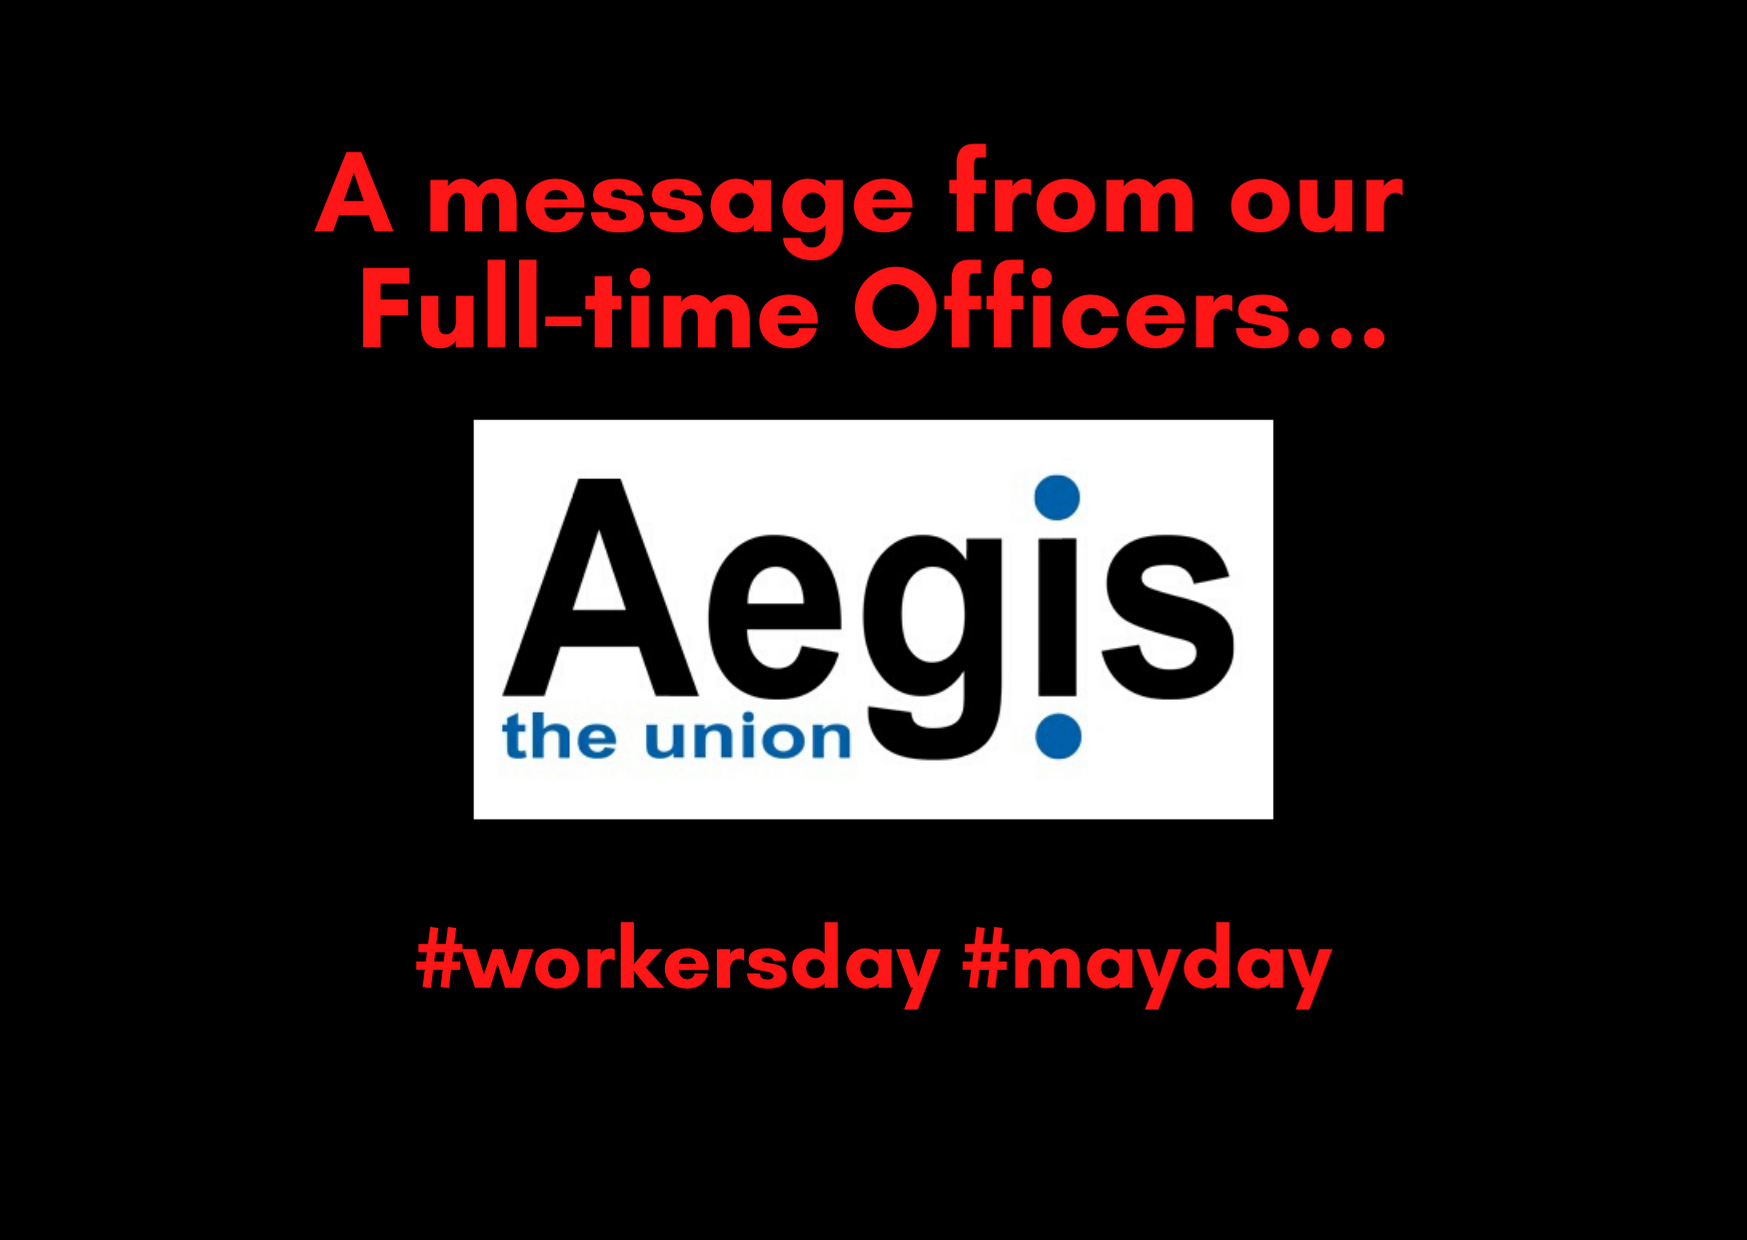 workers day outro(2).png